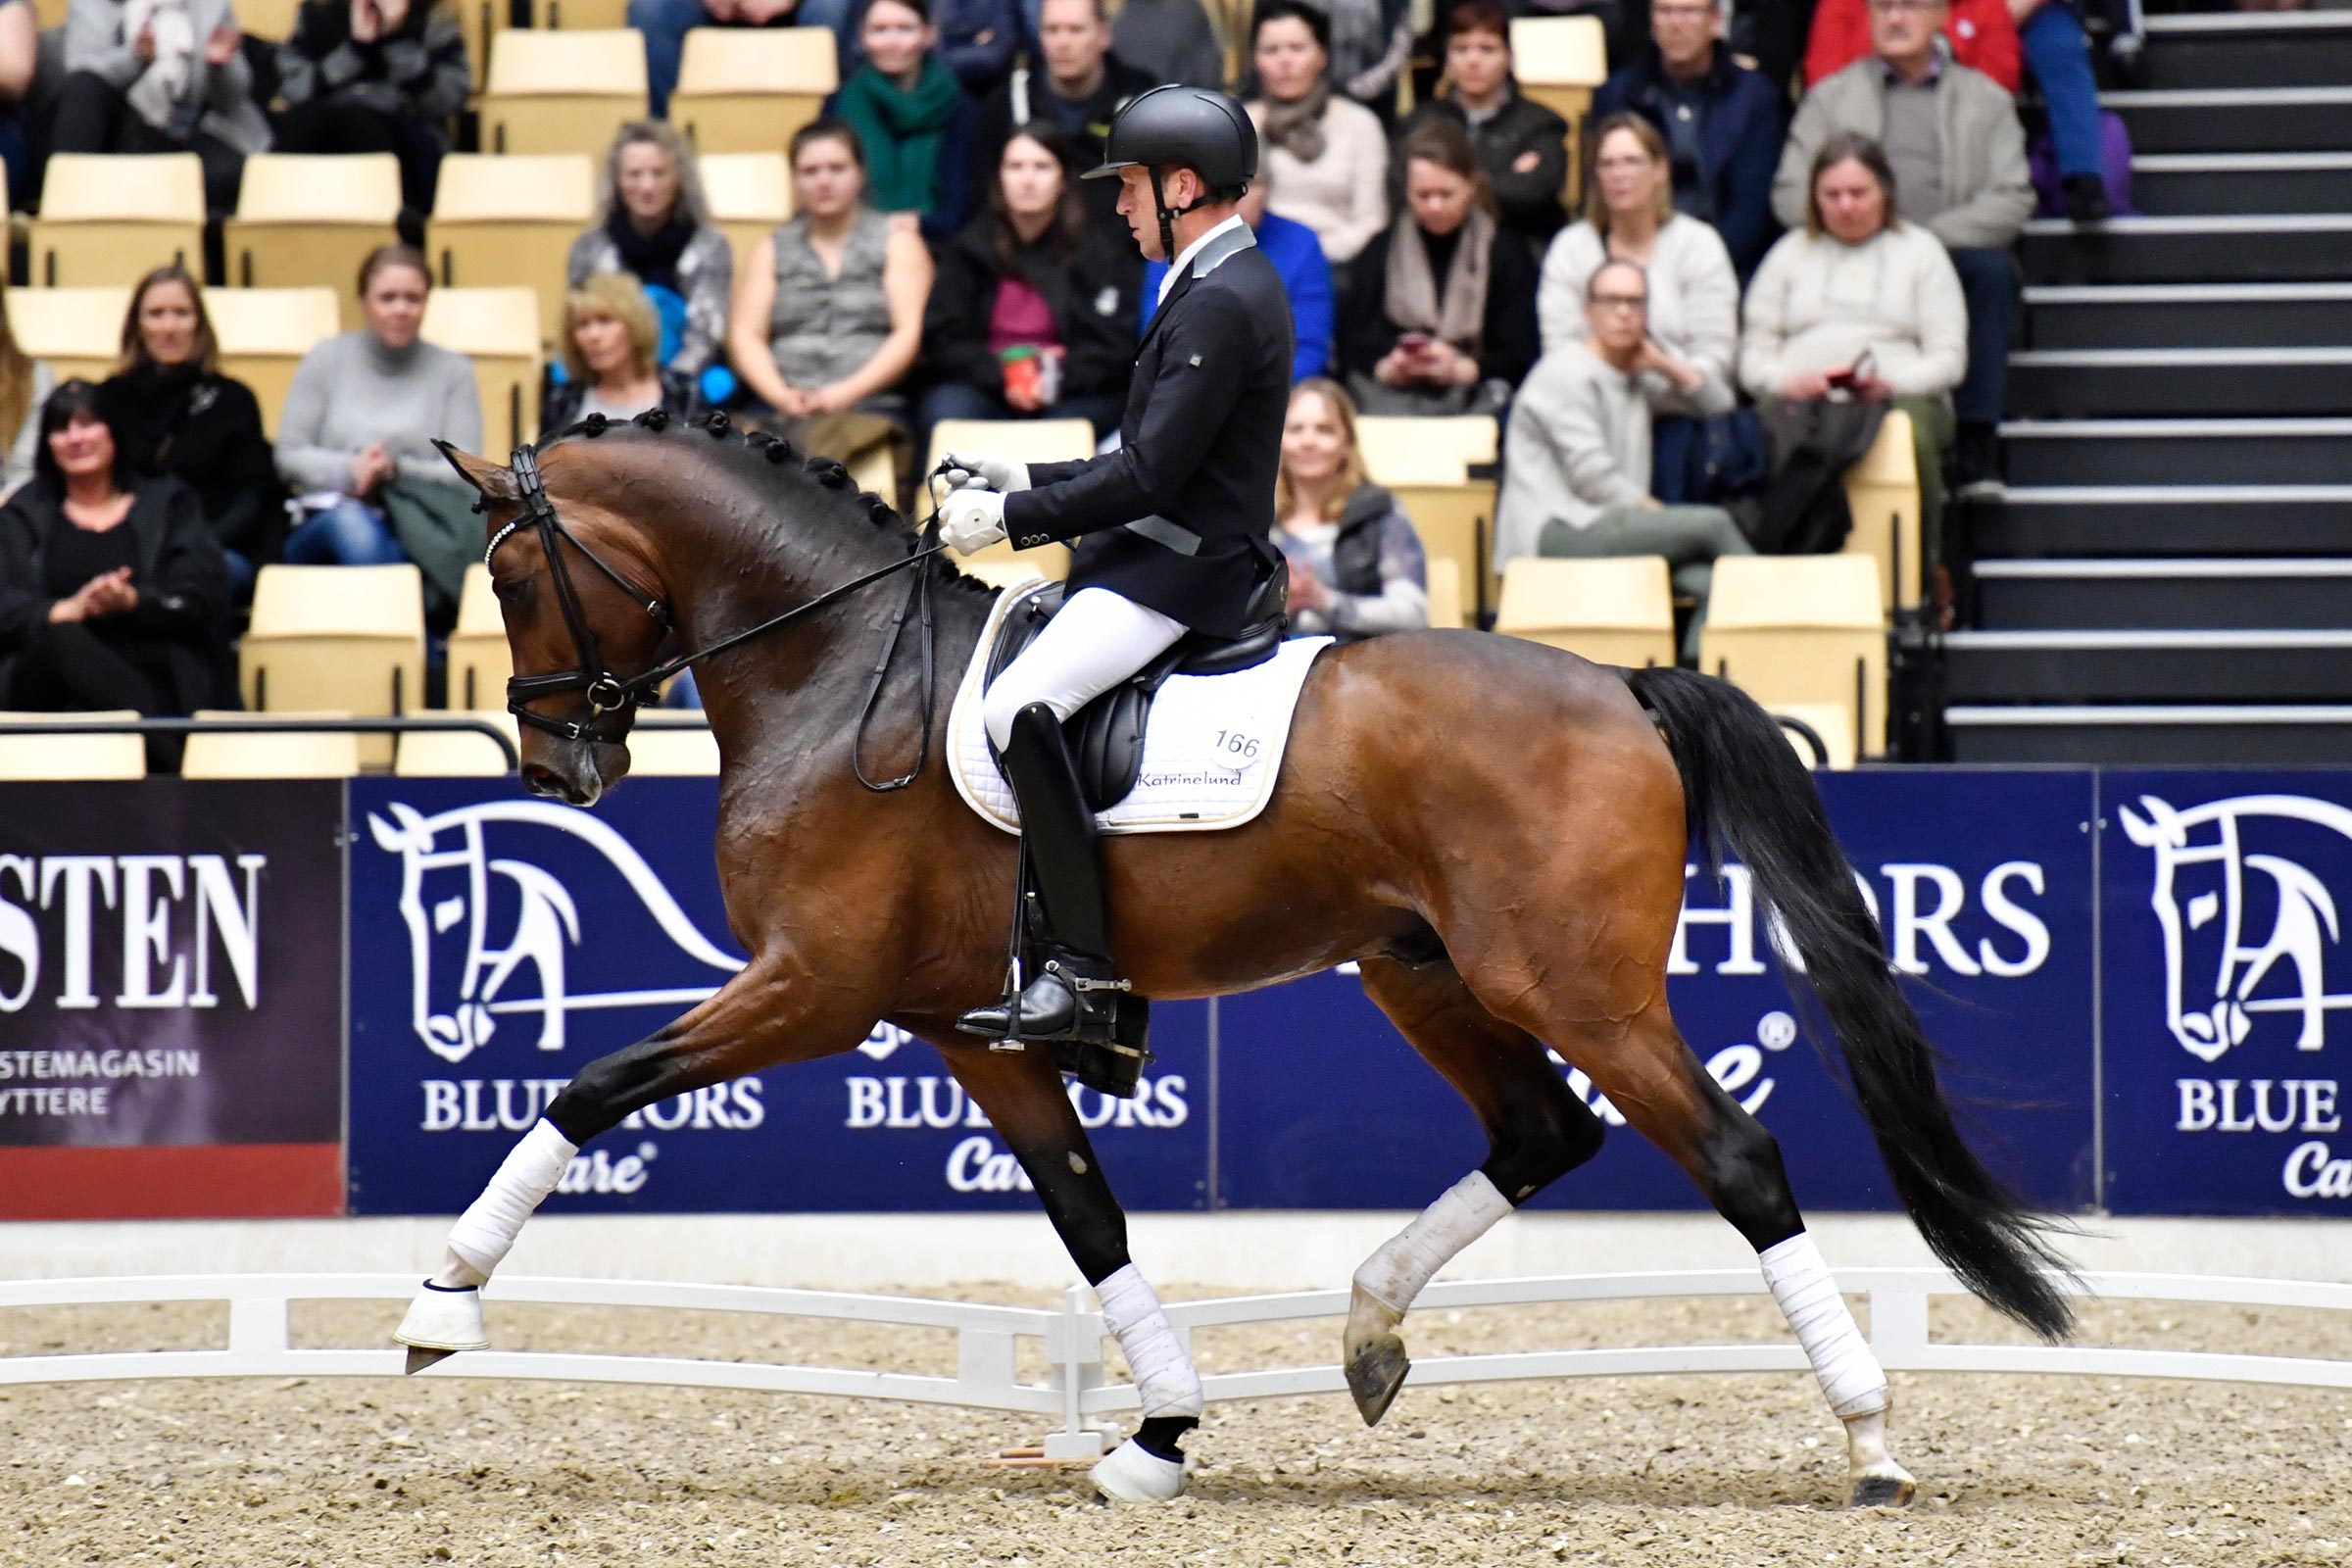 Bronze medallist from Ermelo last year, Danish Warmblood champion stallion, Hesselhøj Donkey Boy will be shown by his steady rider Jan Møller Christensen.